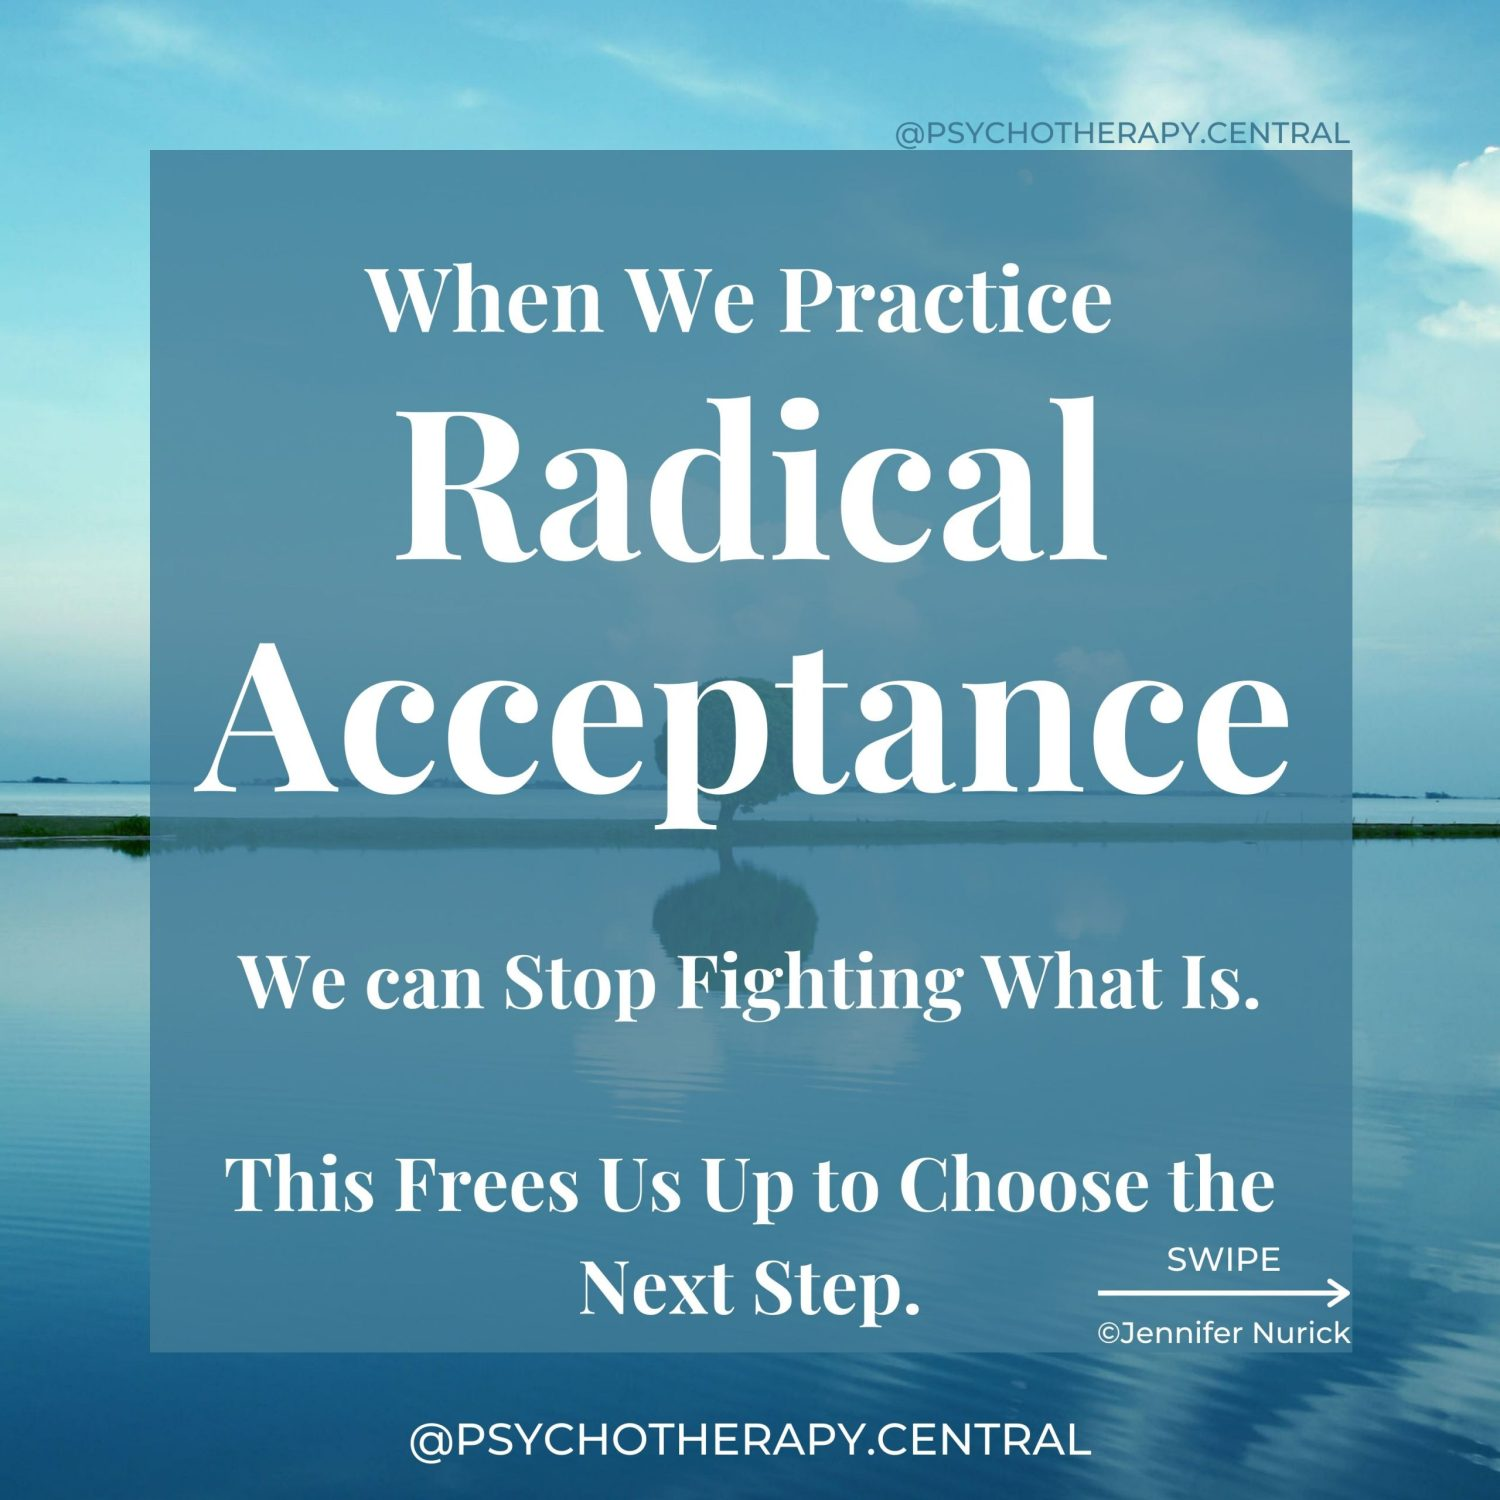 When We Practice Radical Acceptance. We can Stop Fighting What Is. This Frees Us Up to Choose the Next Step. Acceptance is NOT about saying what happened is okay. It is a gentle process of laying down arms against it. I am fed up with thinking you shouldn't have happened and fighting with you. I don't like you. But I am going to accept you. Whatever you are. Now, from this place, what am I going to do?